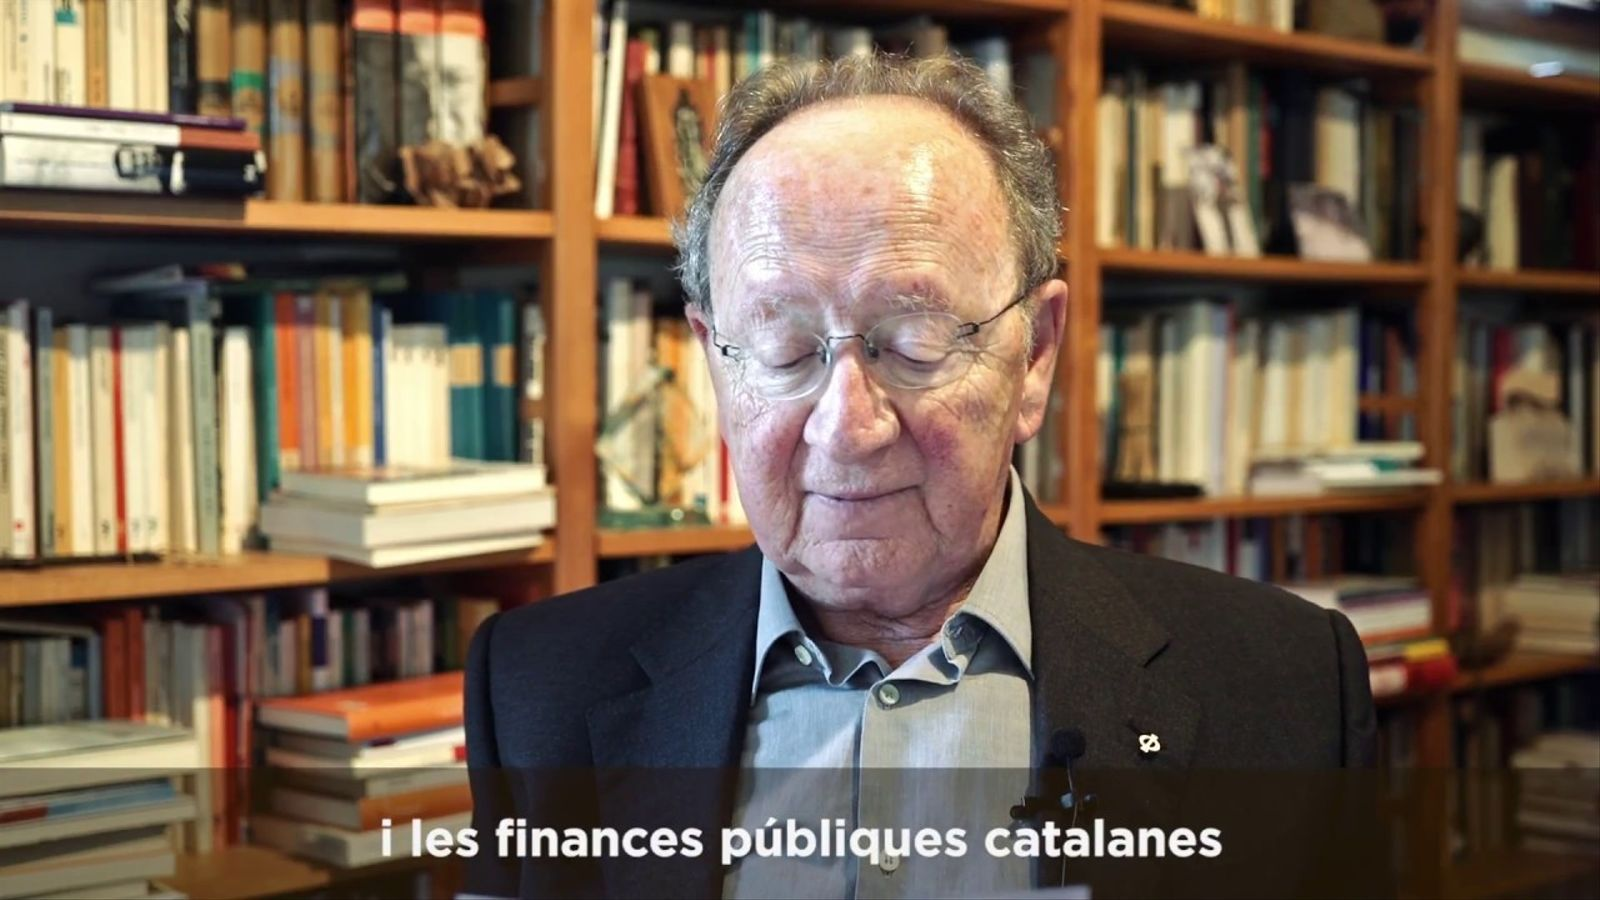 Joan F. Mira speaks about the recent events in Catalonia